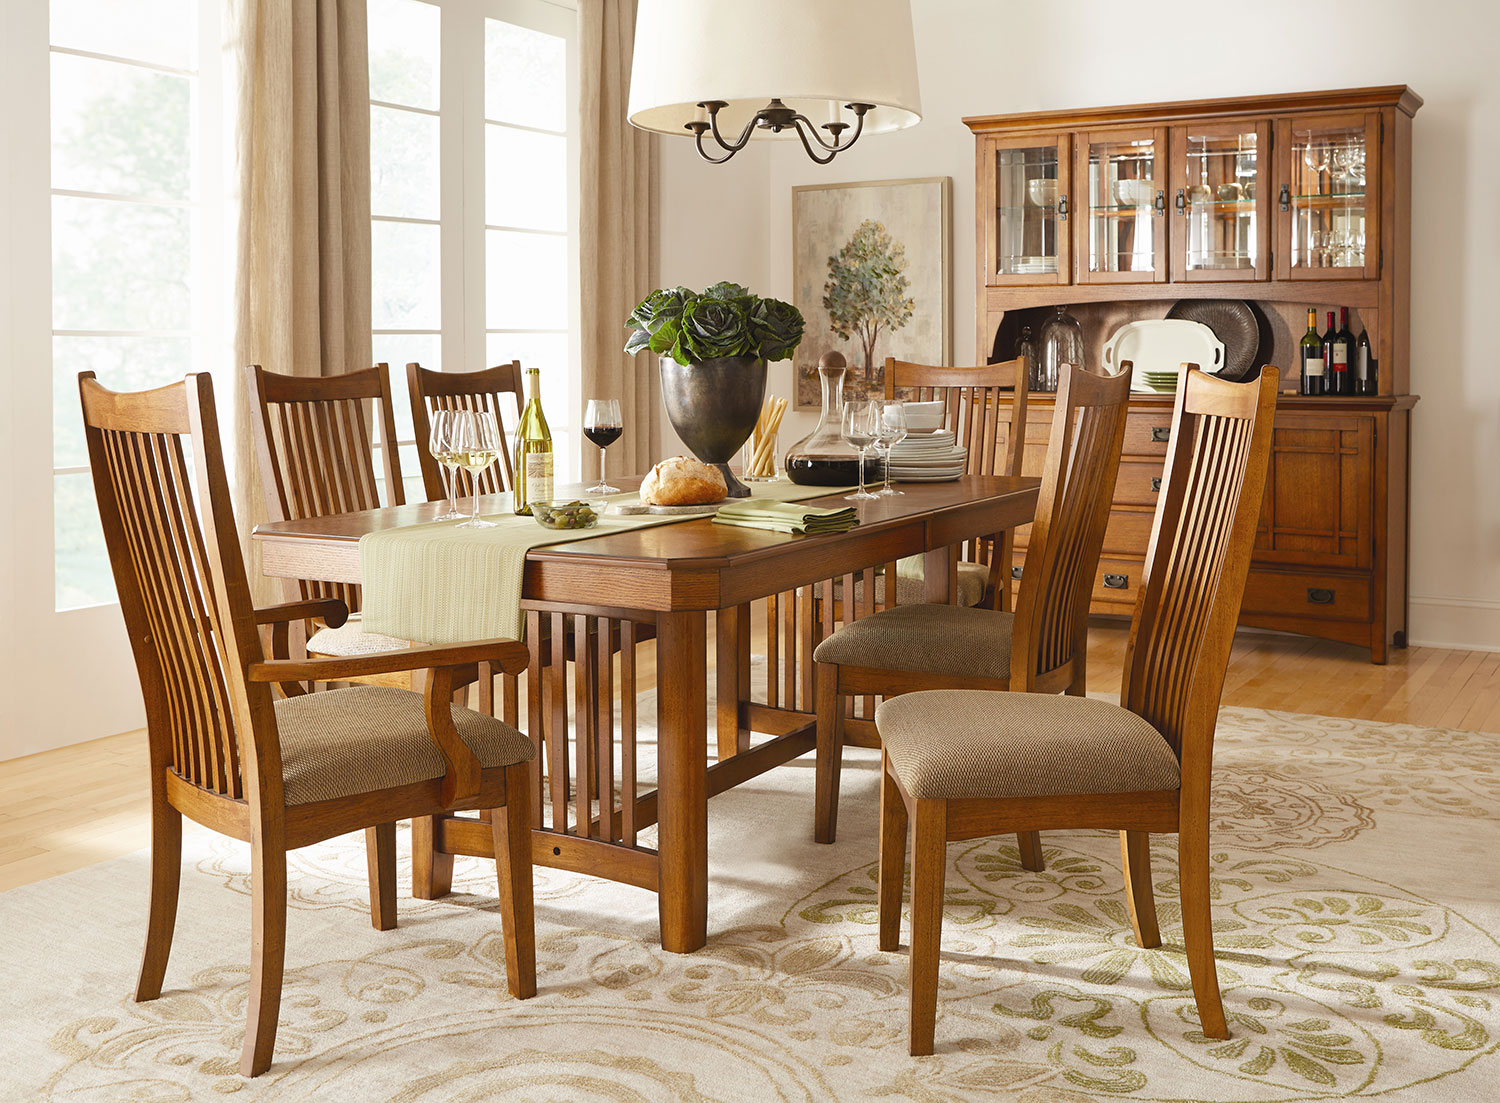 Crystal Ridge Table 2 Arm Chairs and 4 Side Chairs Oak